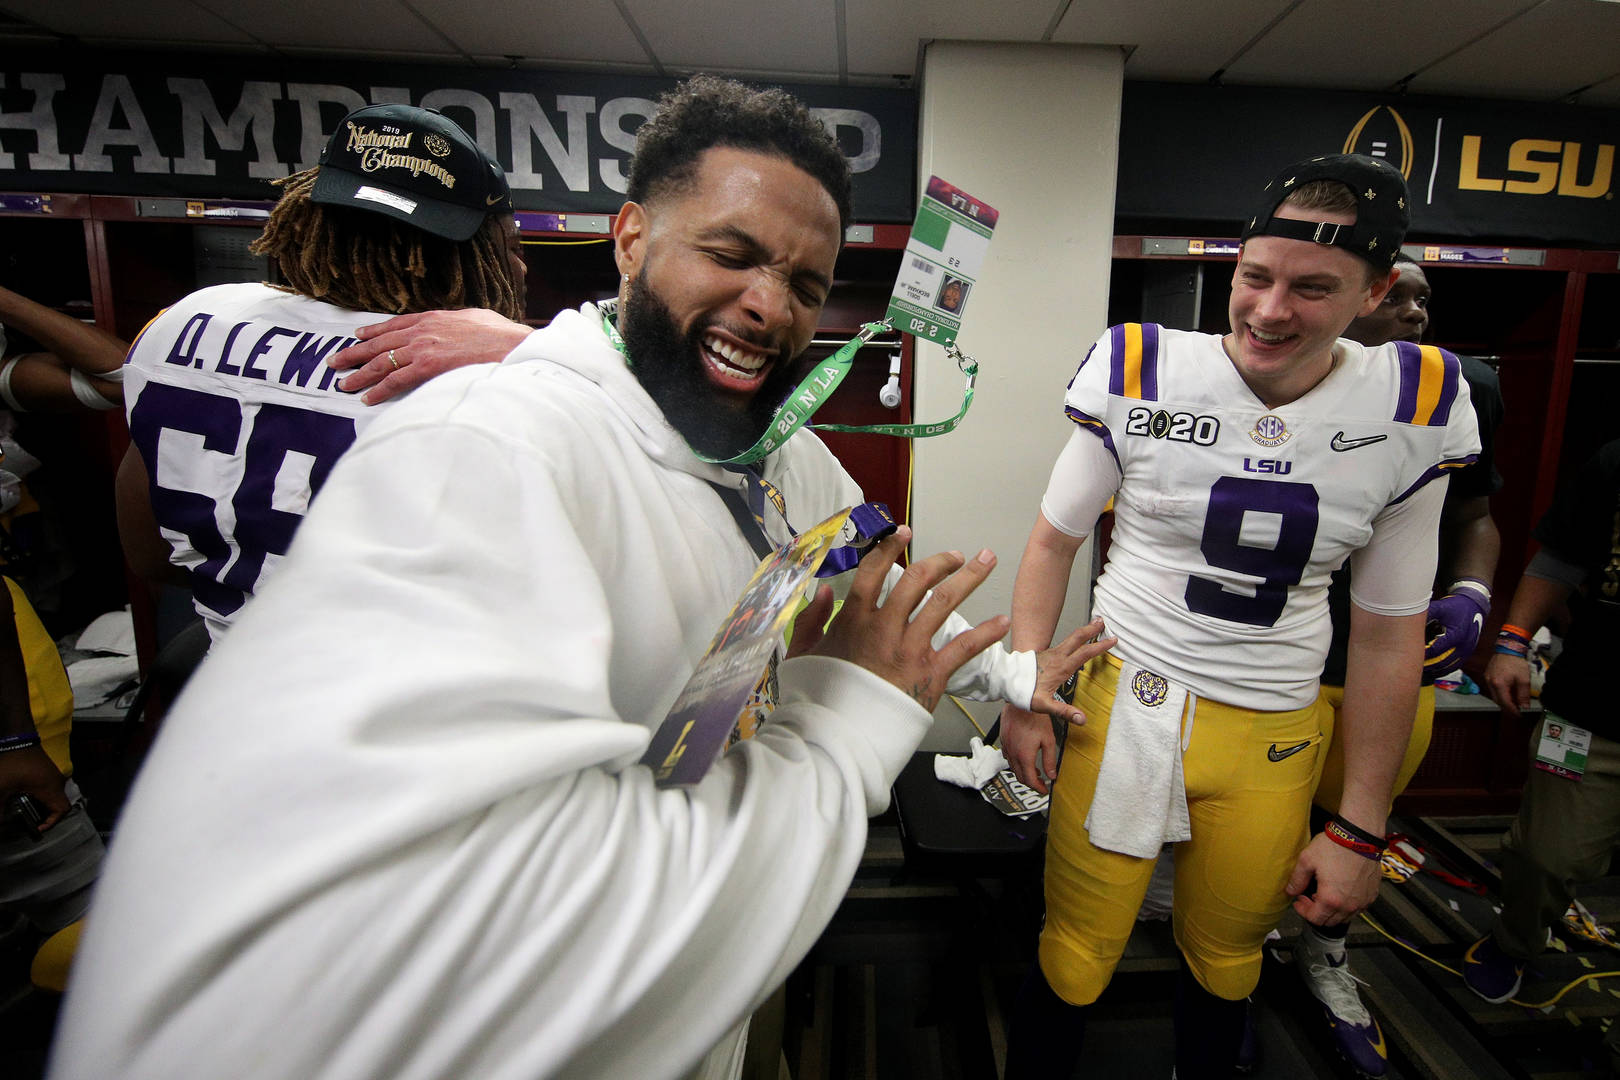 Odell Beckham Jr. Handed Out Fake Money To LSU Football Team After Win